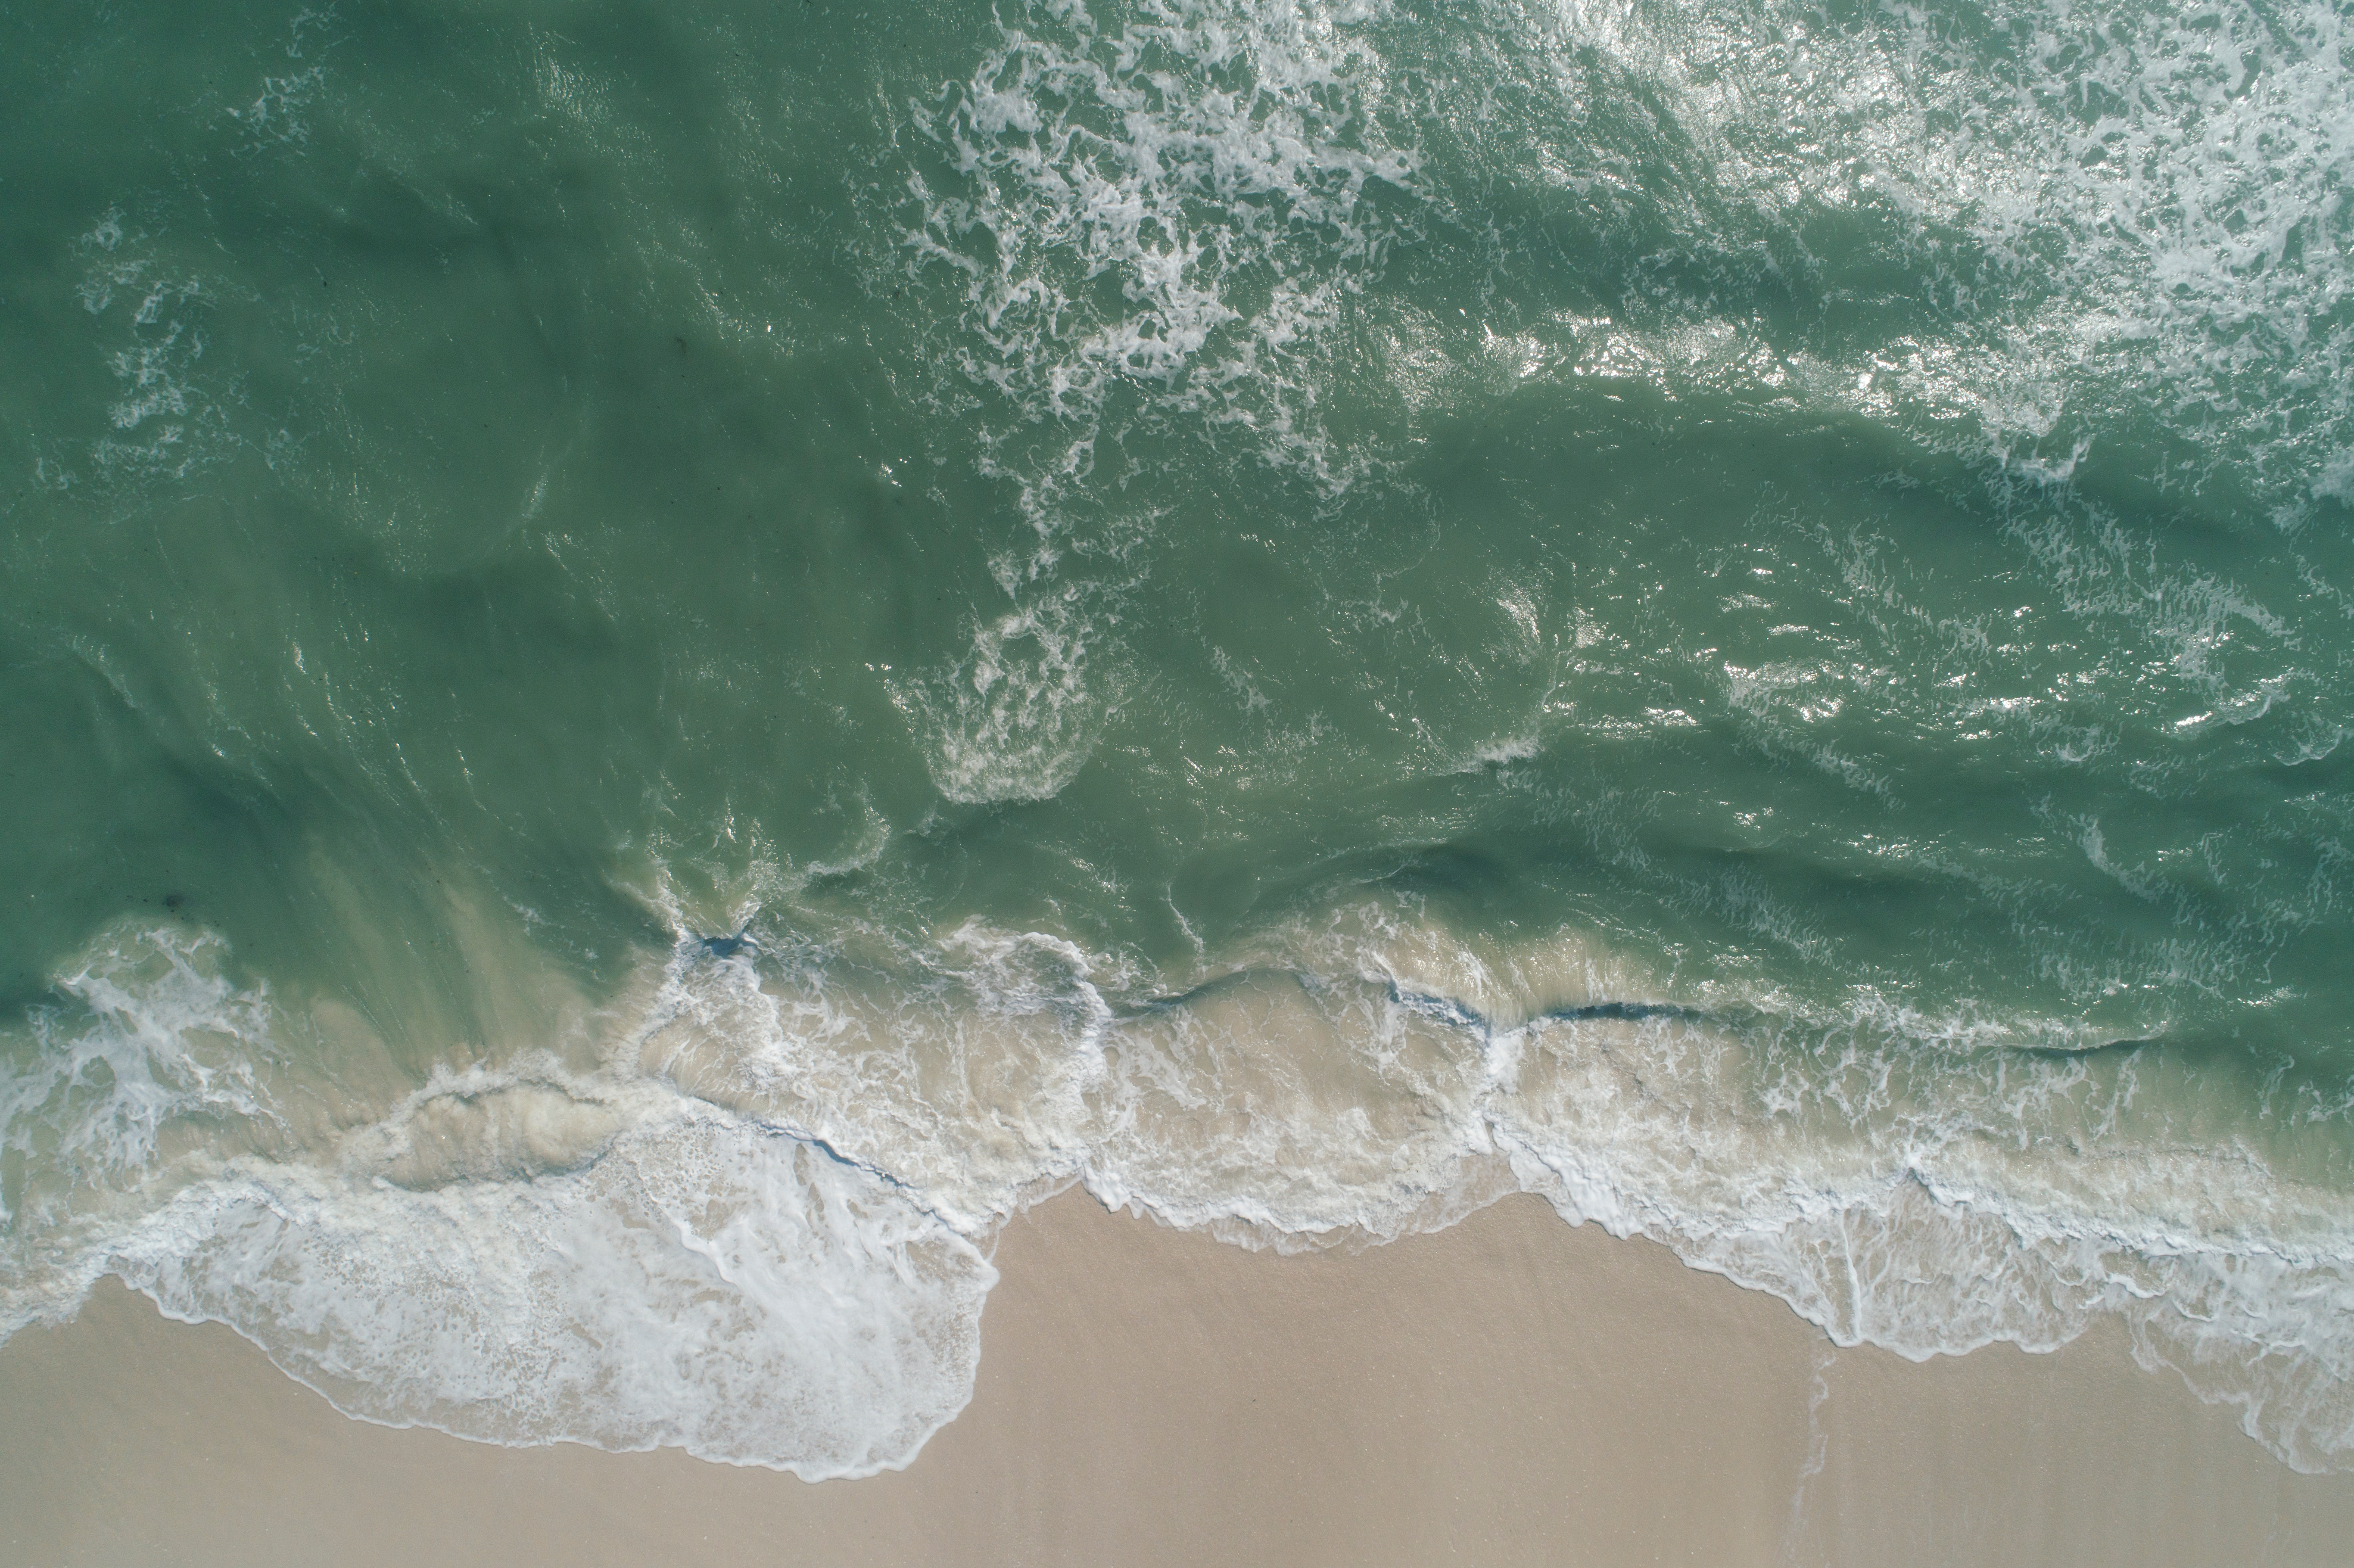 an aerial photograph of a green-ish ocean wave coming in to sand